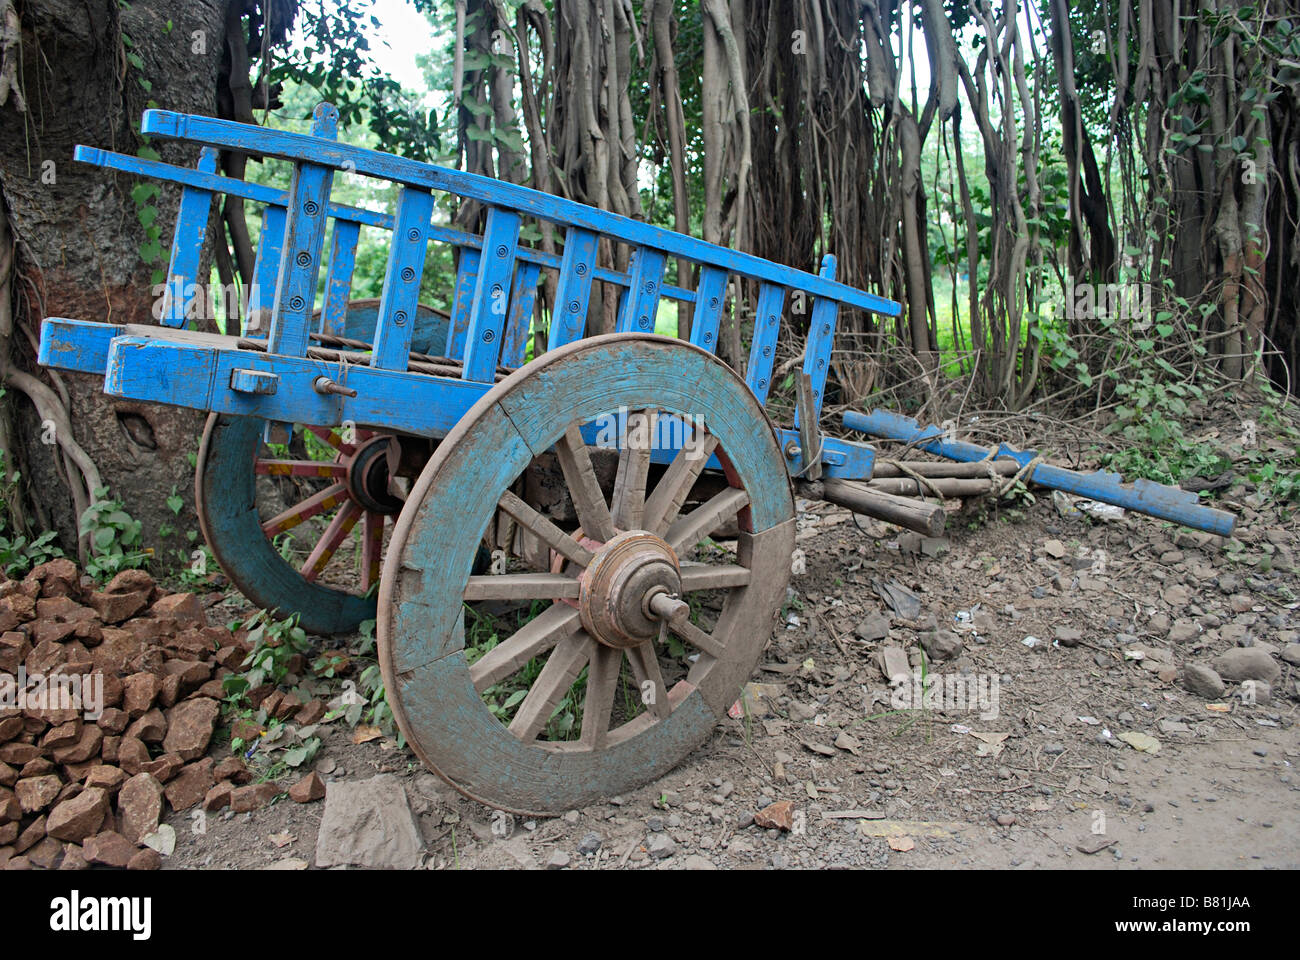 Bullock cart without bulls parked at the side of the Sinhgad road, Maharashtra, India. - Stock Image